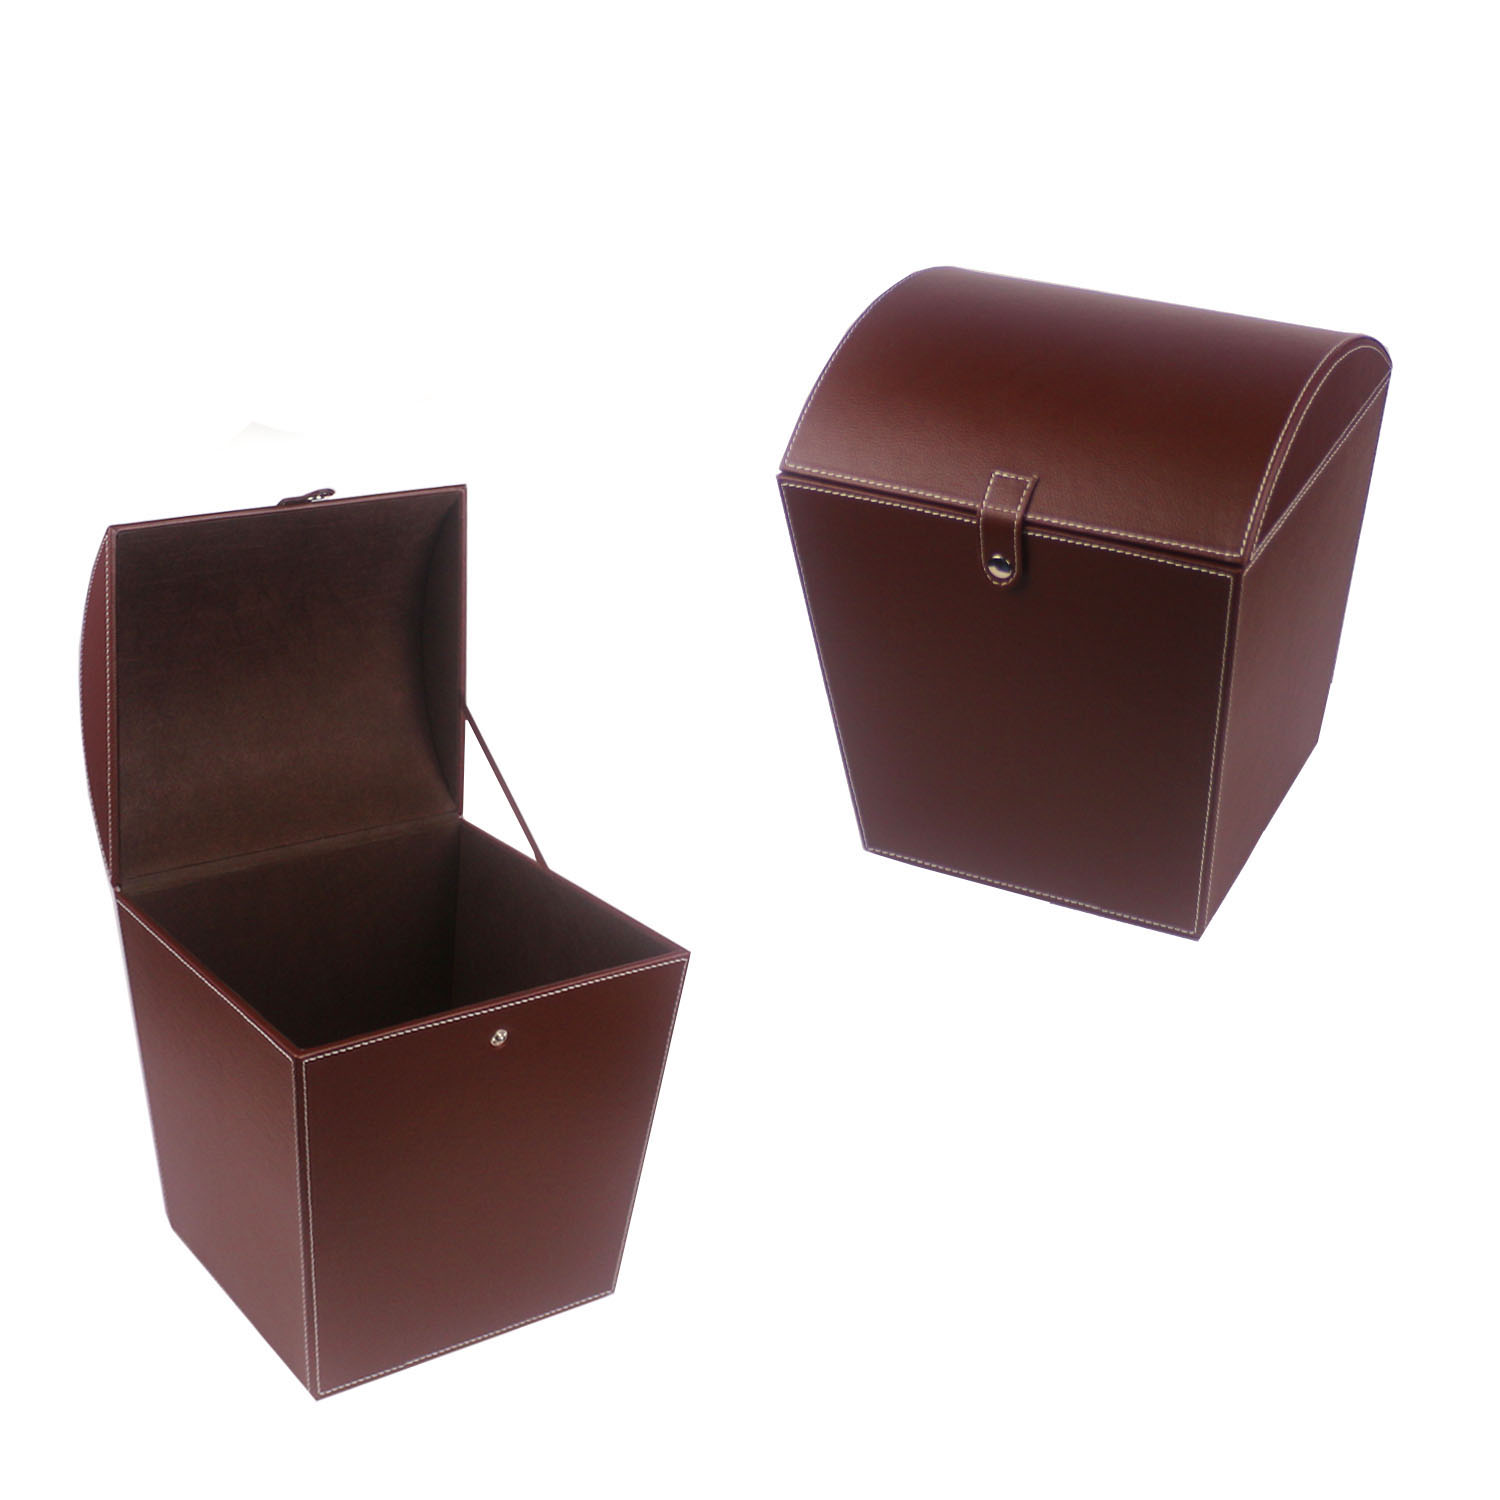 Custom leather large odorless home garbage trash bin